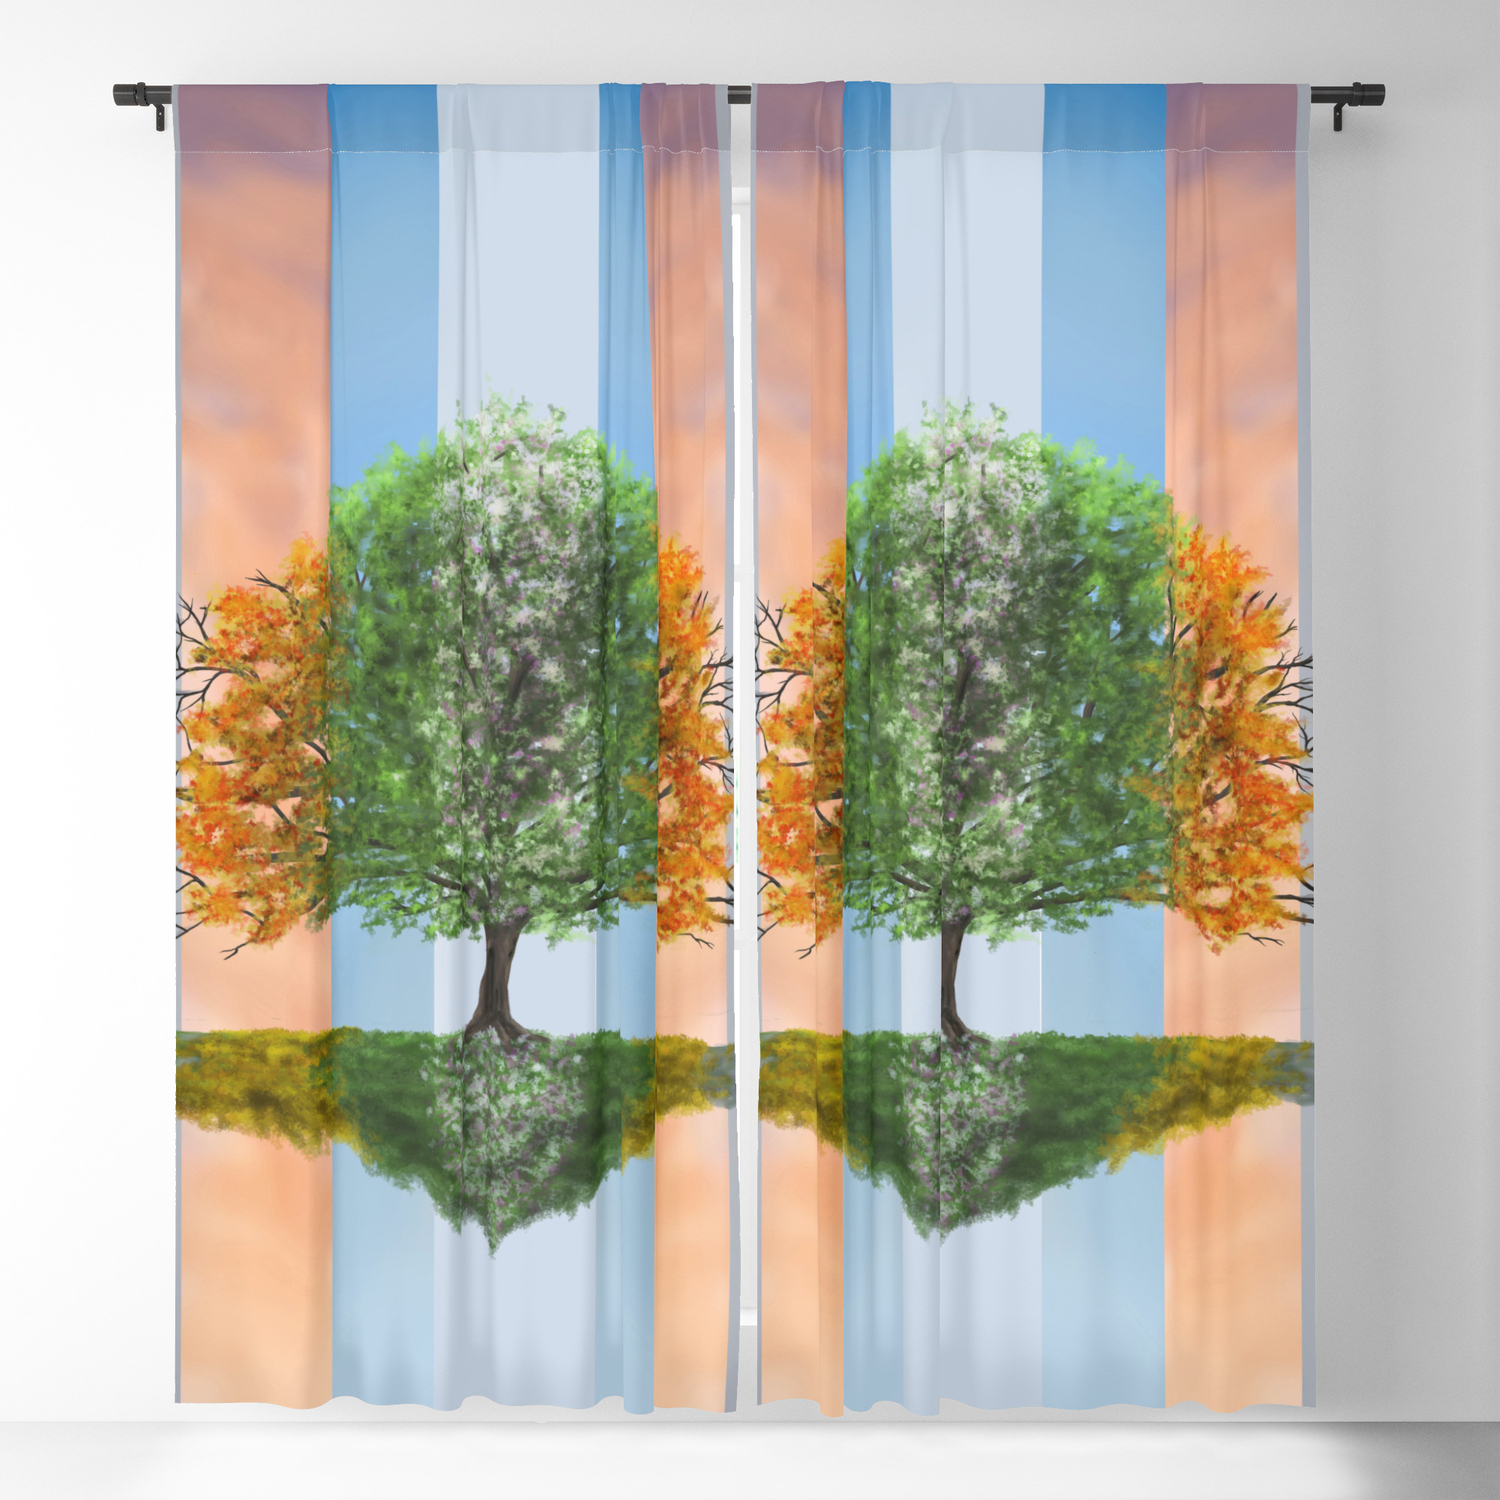 Digital Painting Of The Seasons Of The Year In A Tree Blackout Curtain Signorum Pertaining To All Seasons Blackout Window Curtains (View 15 of 20)